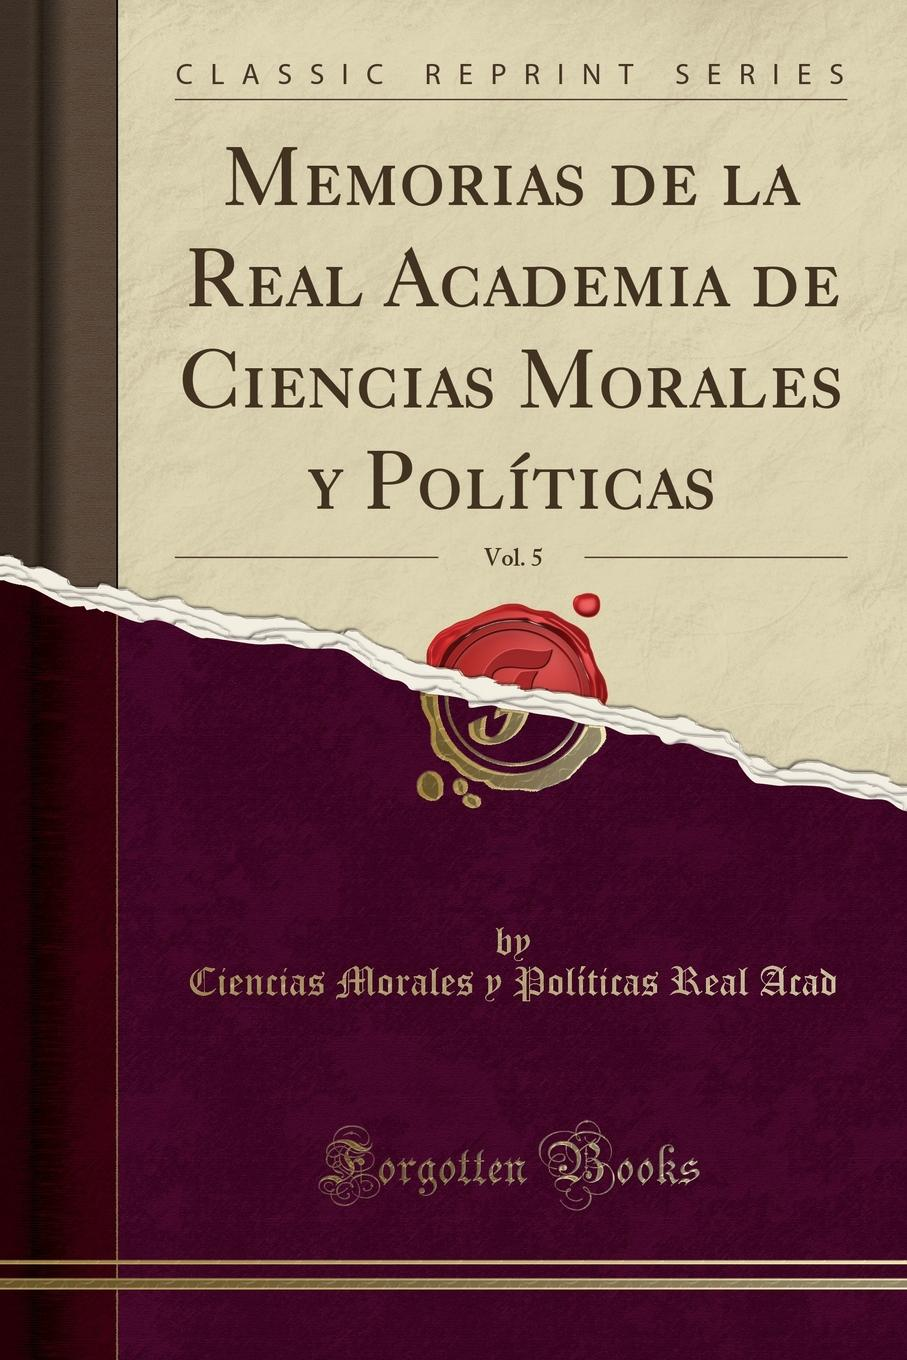 Ciencias Morales y Políticas Real Acad Memorias de la Real Academia de Ciencias Morales y Politicas, Vol. 5 (Classic Reprint) пол маккриш cristobal de morales mass for the feast of st isidore of seville